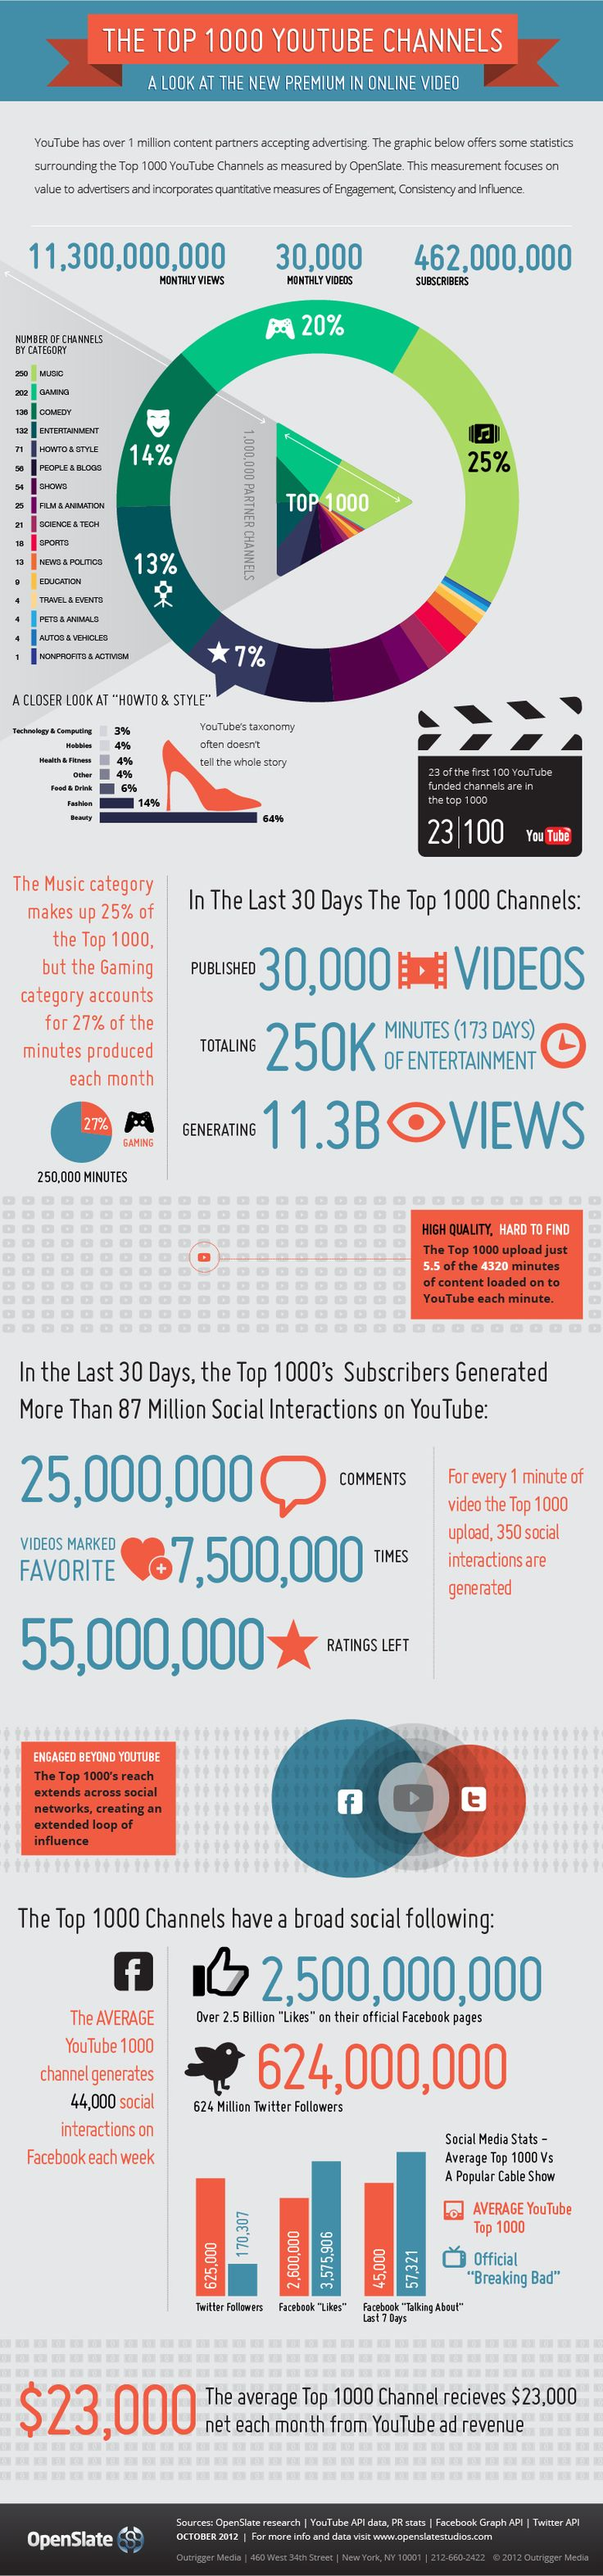 YouTube's Top 100 Channels (Infographic) | 2012 | Popular Genres Viewed/Searched